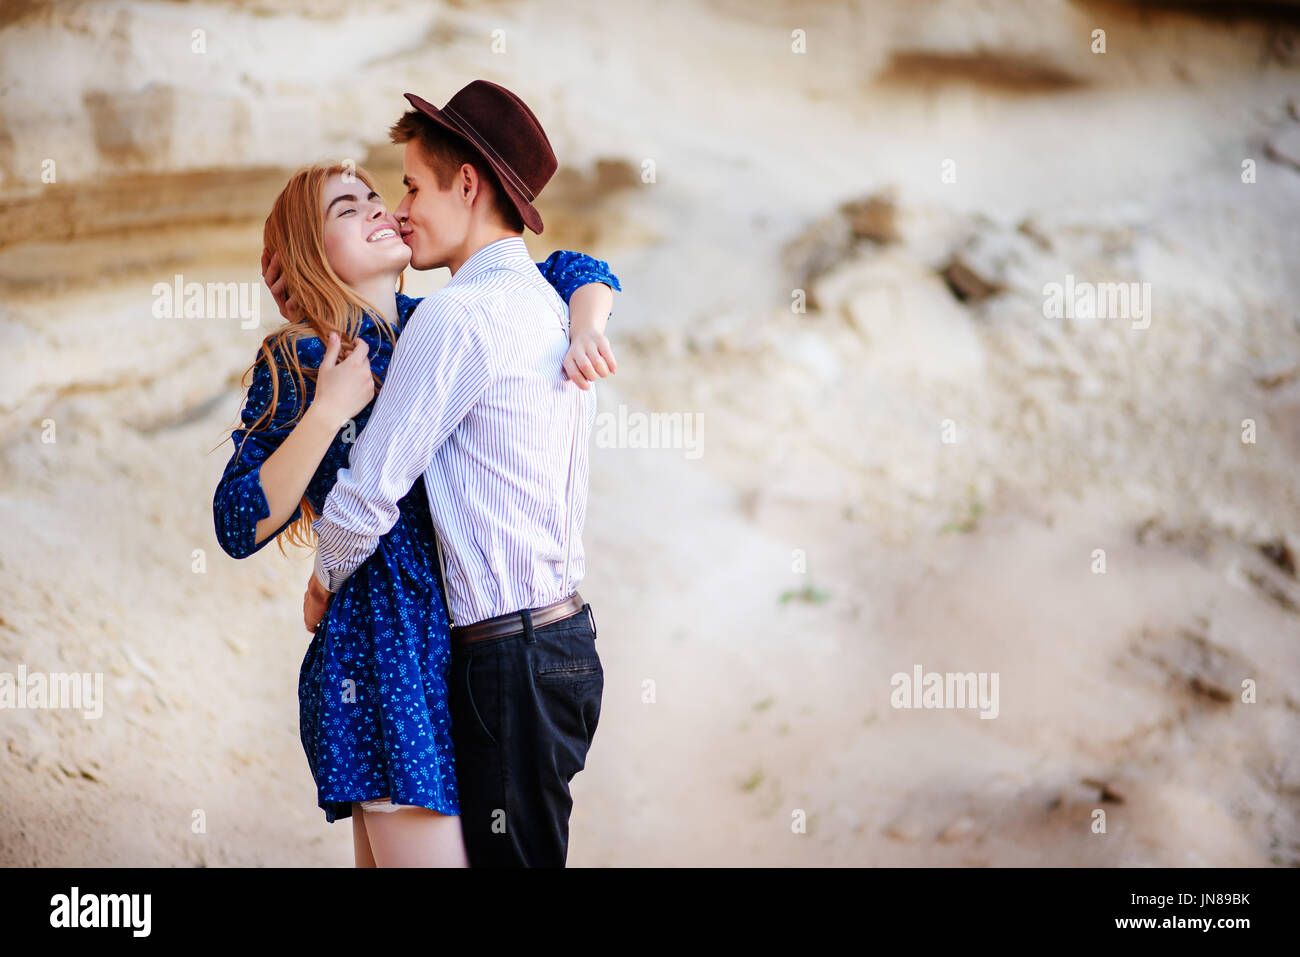 An attractive man is hugging and kissing an beautiful woman in a blue dress in the middle of a sandy canyon. - Stock Image